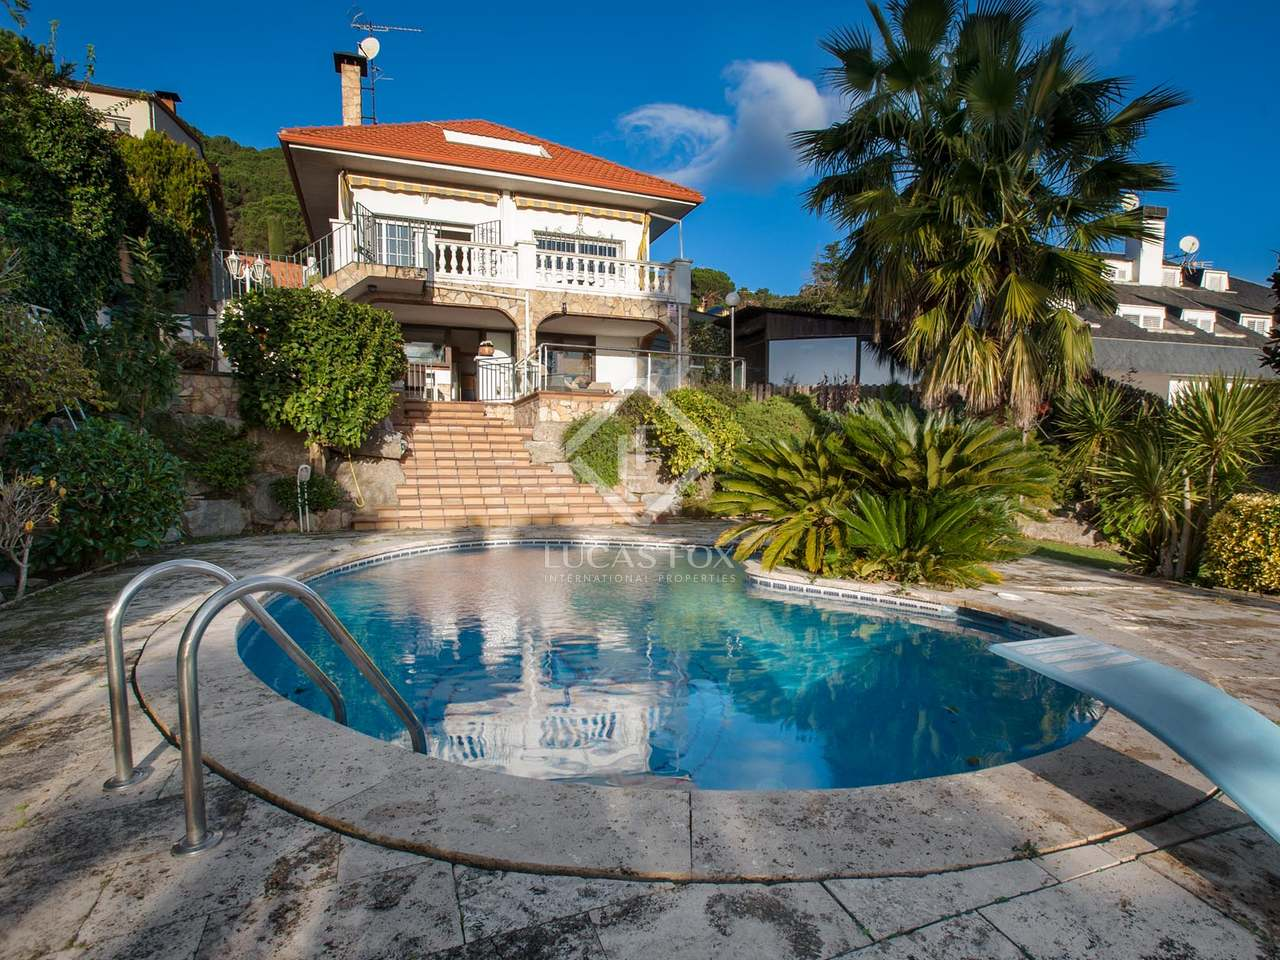 5 bedroom house with a garden and pool to buy in argentona for Selling a house with a pool